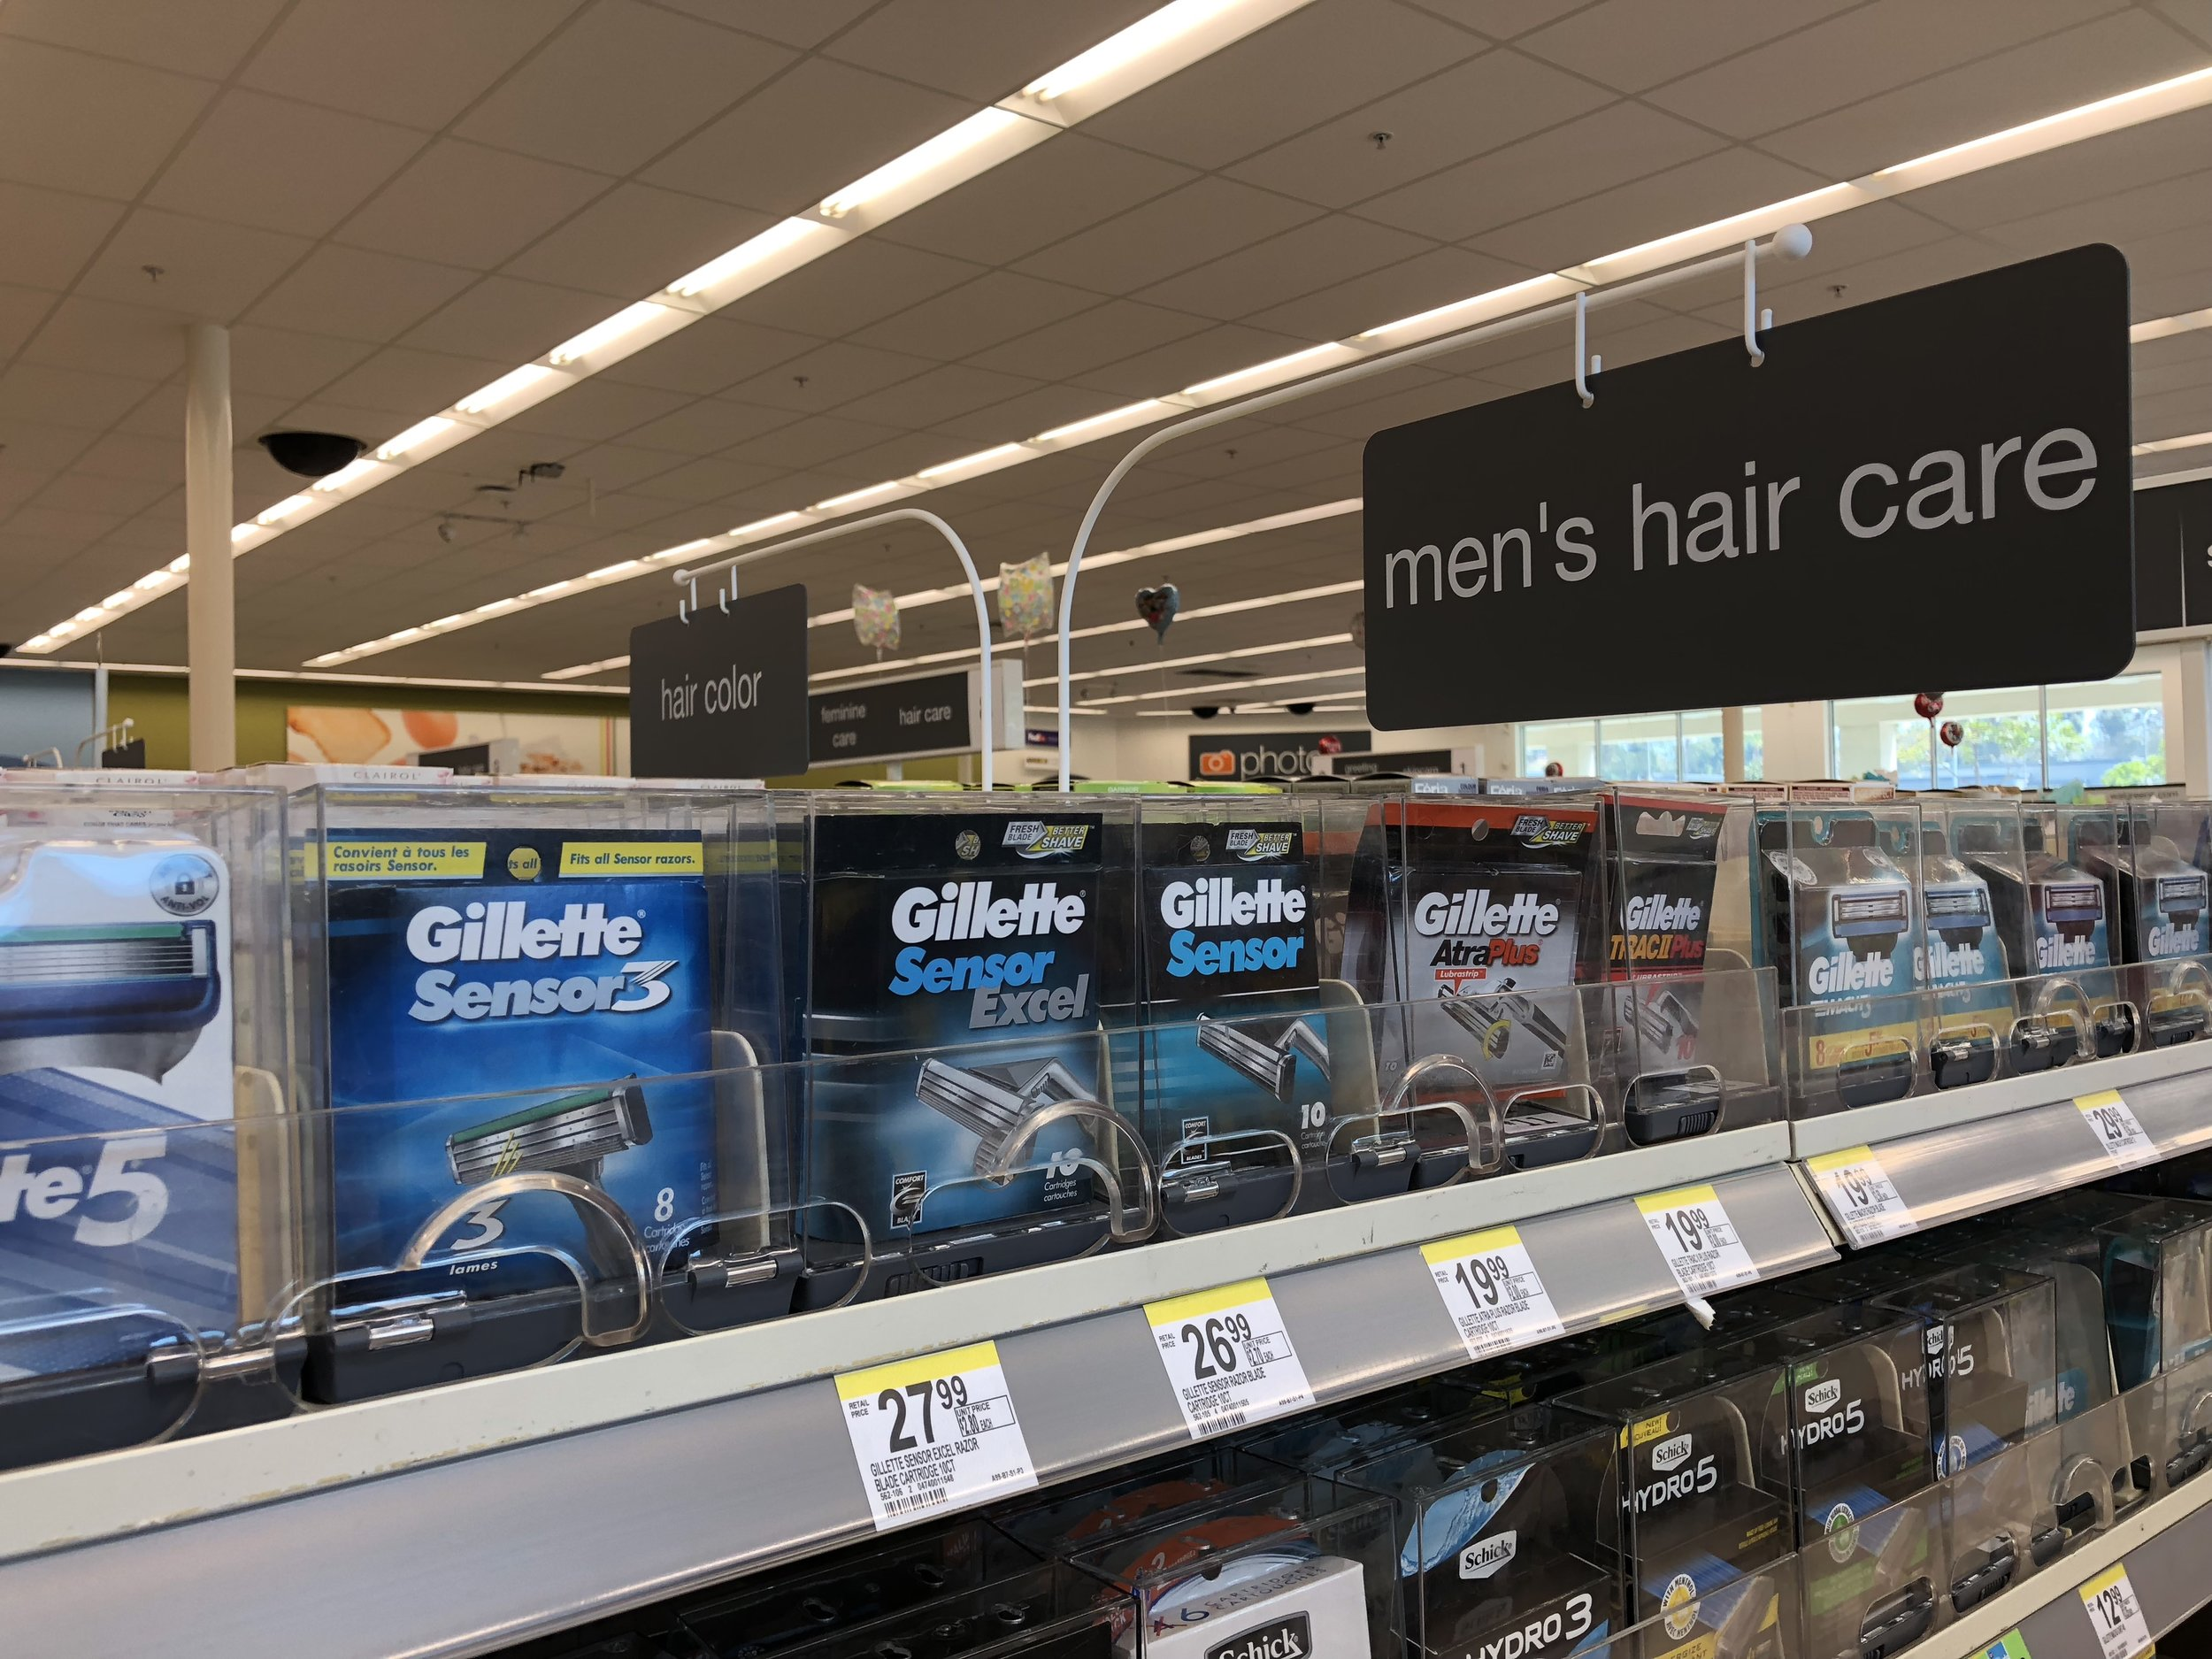 Men's hair care sign hung over the shaving section.